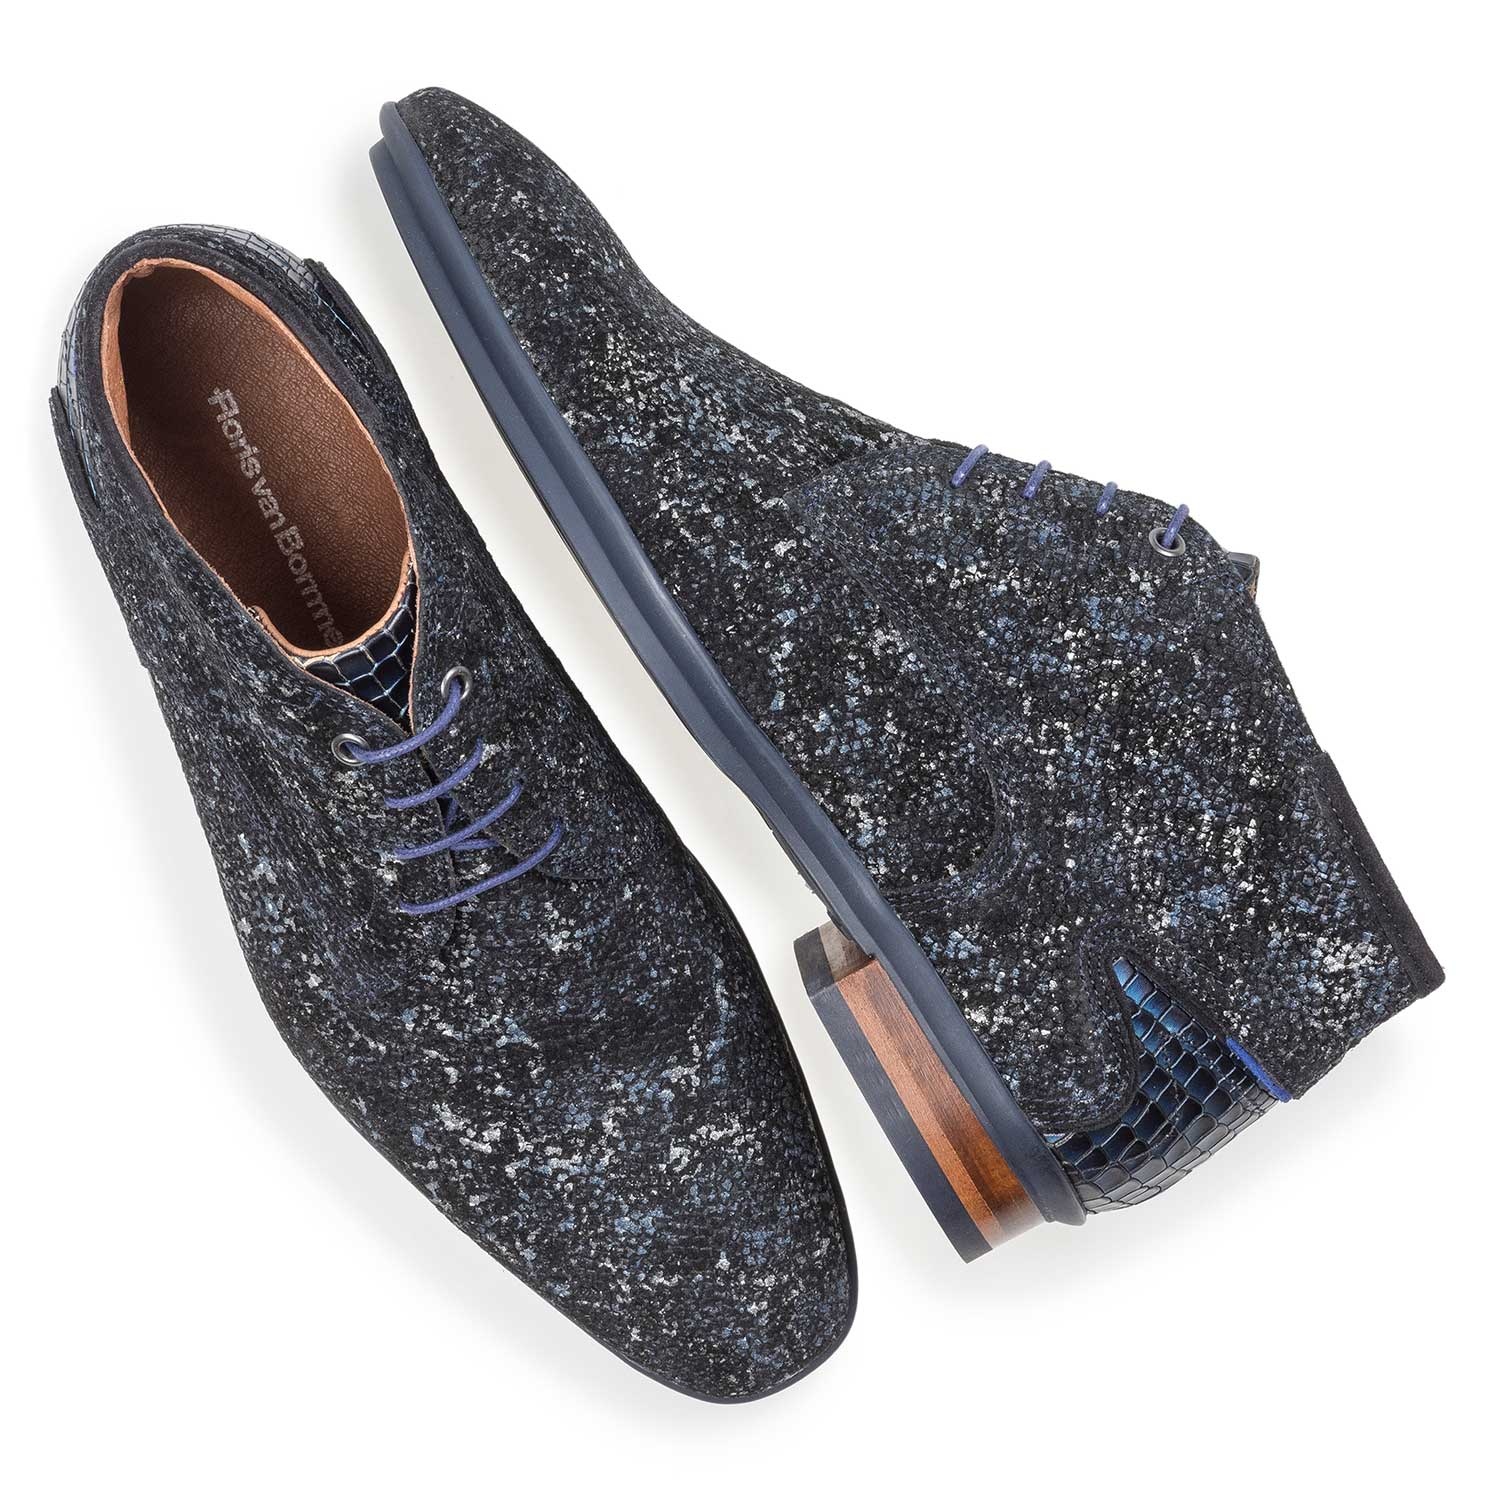 10131/23 - Dark blue leather lace shoe with an organic texture